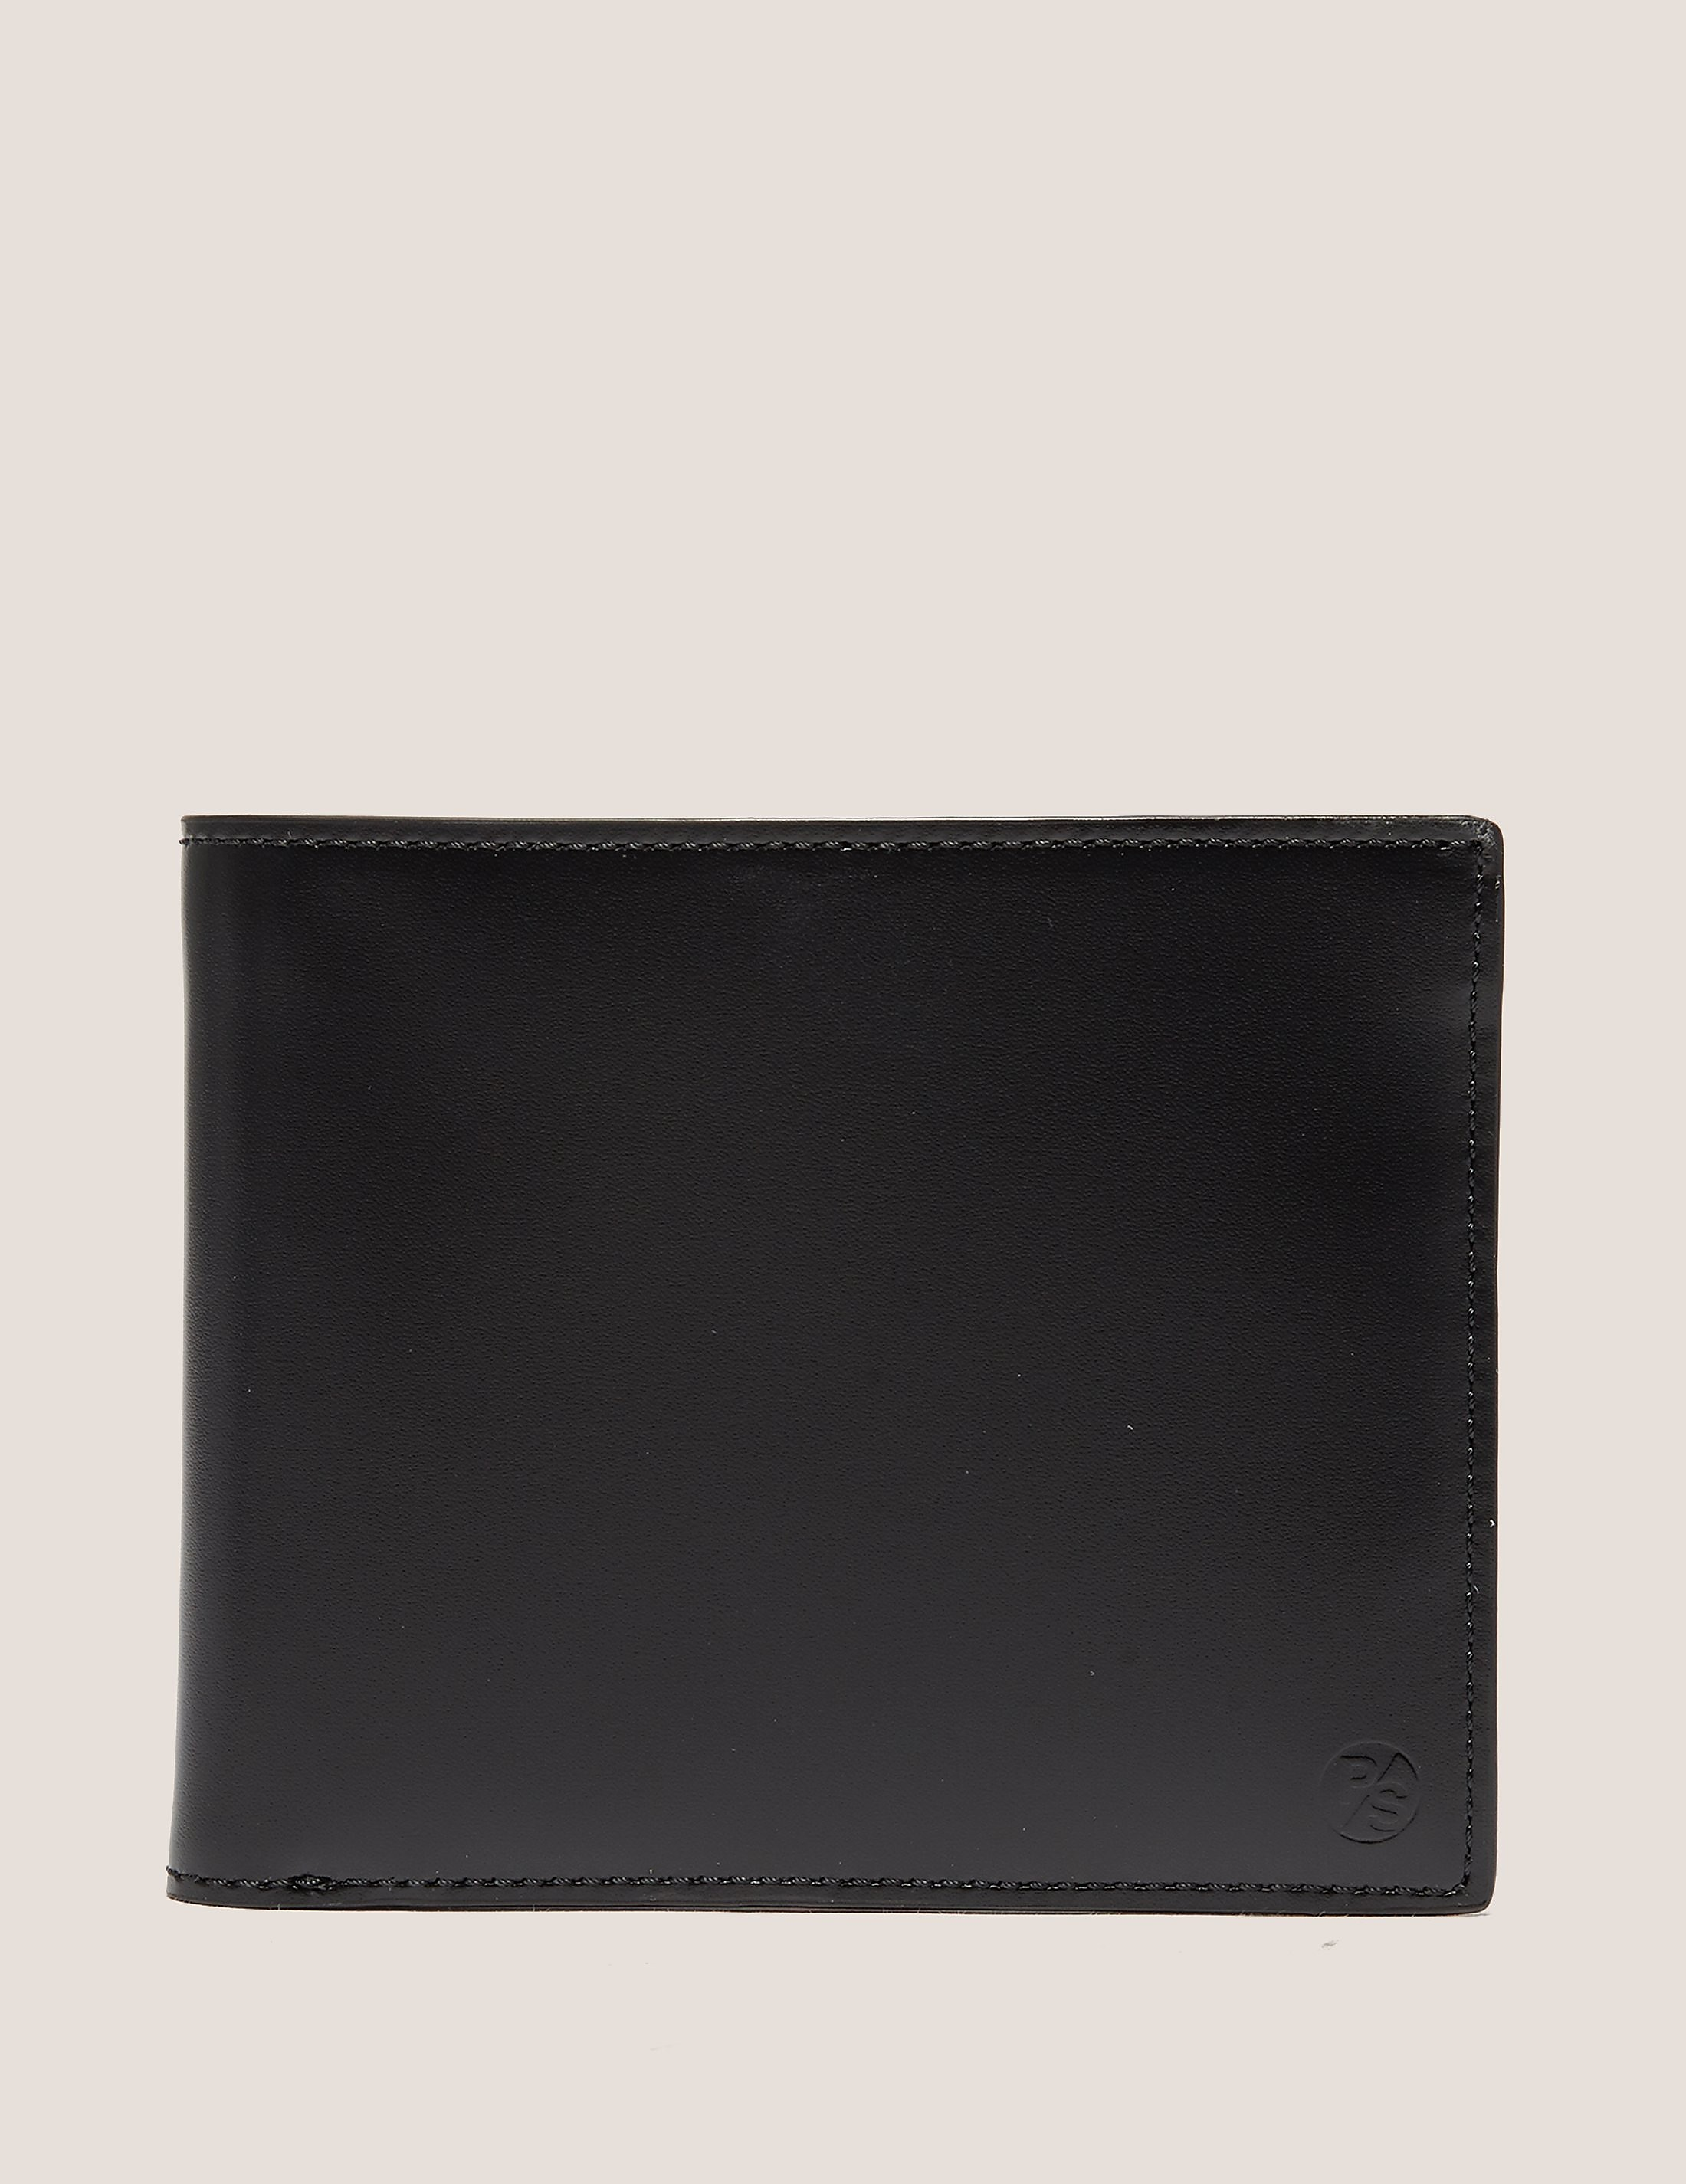 Paul Smith Pens Print Billfold Wallet